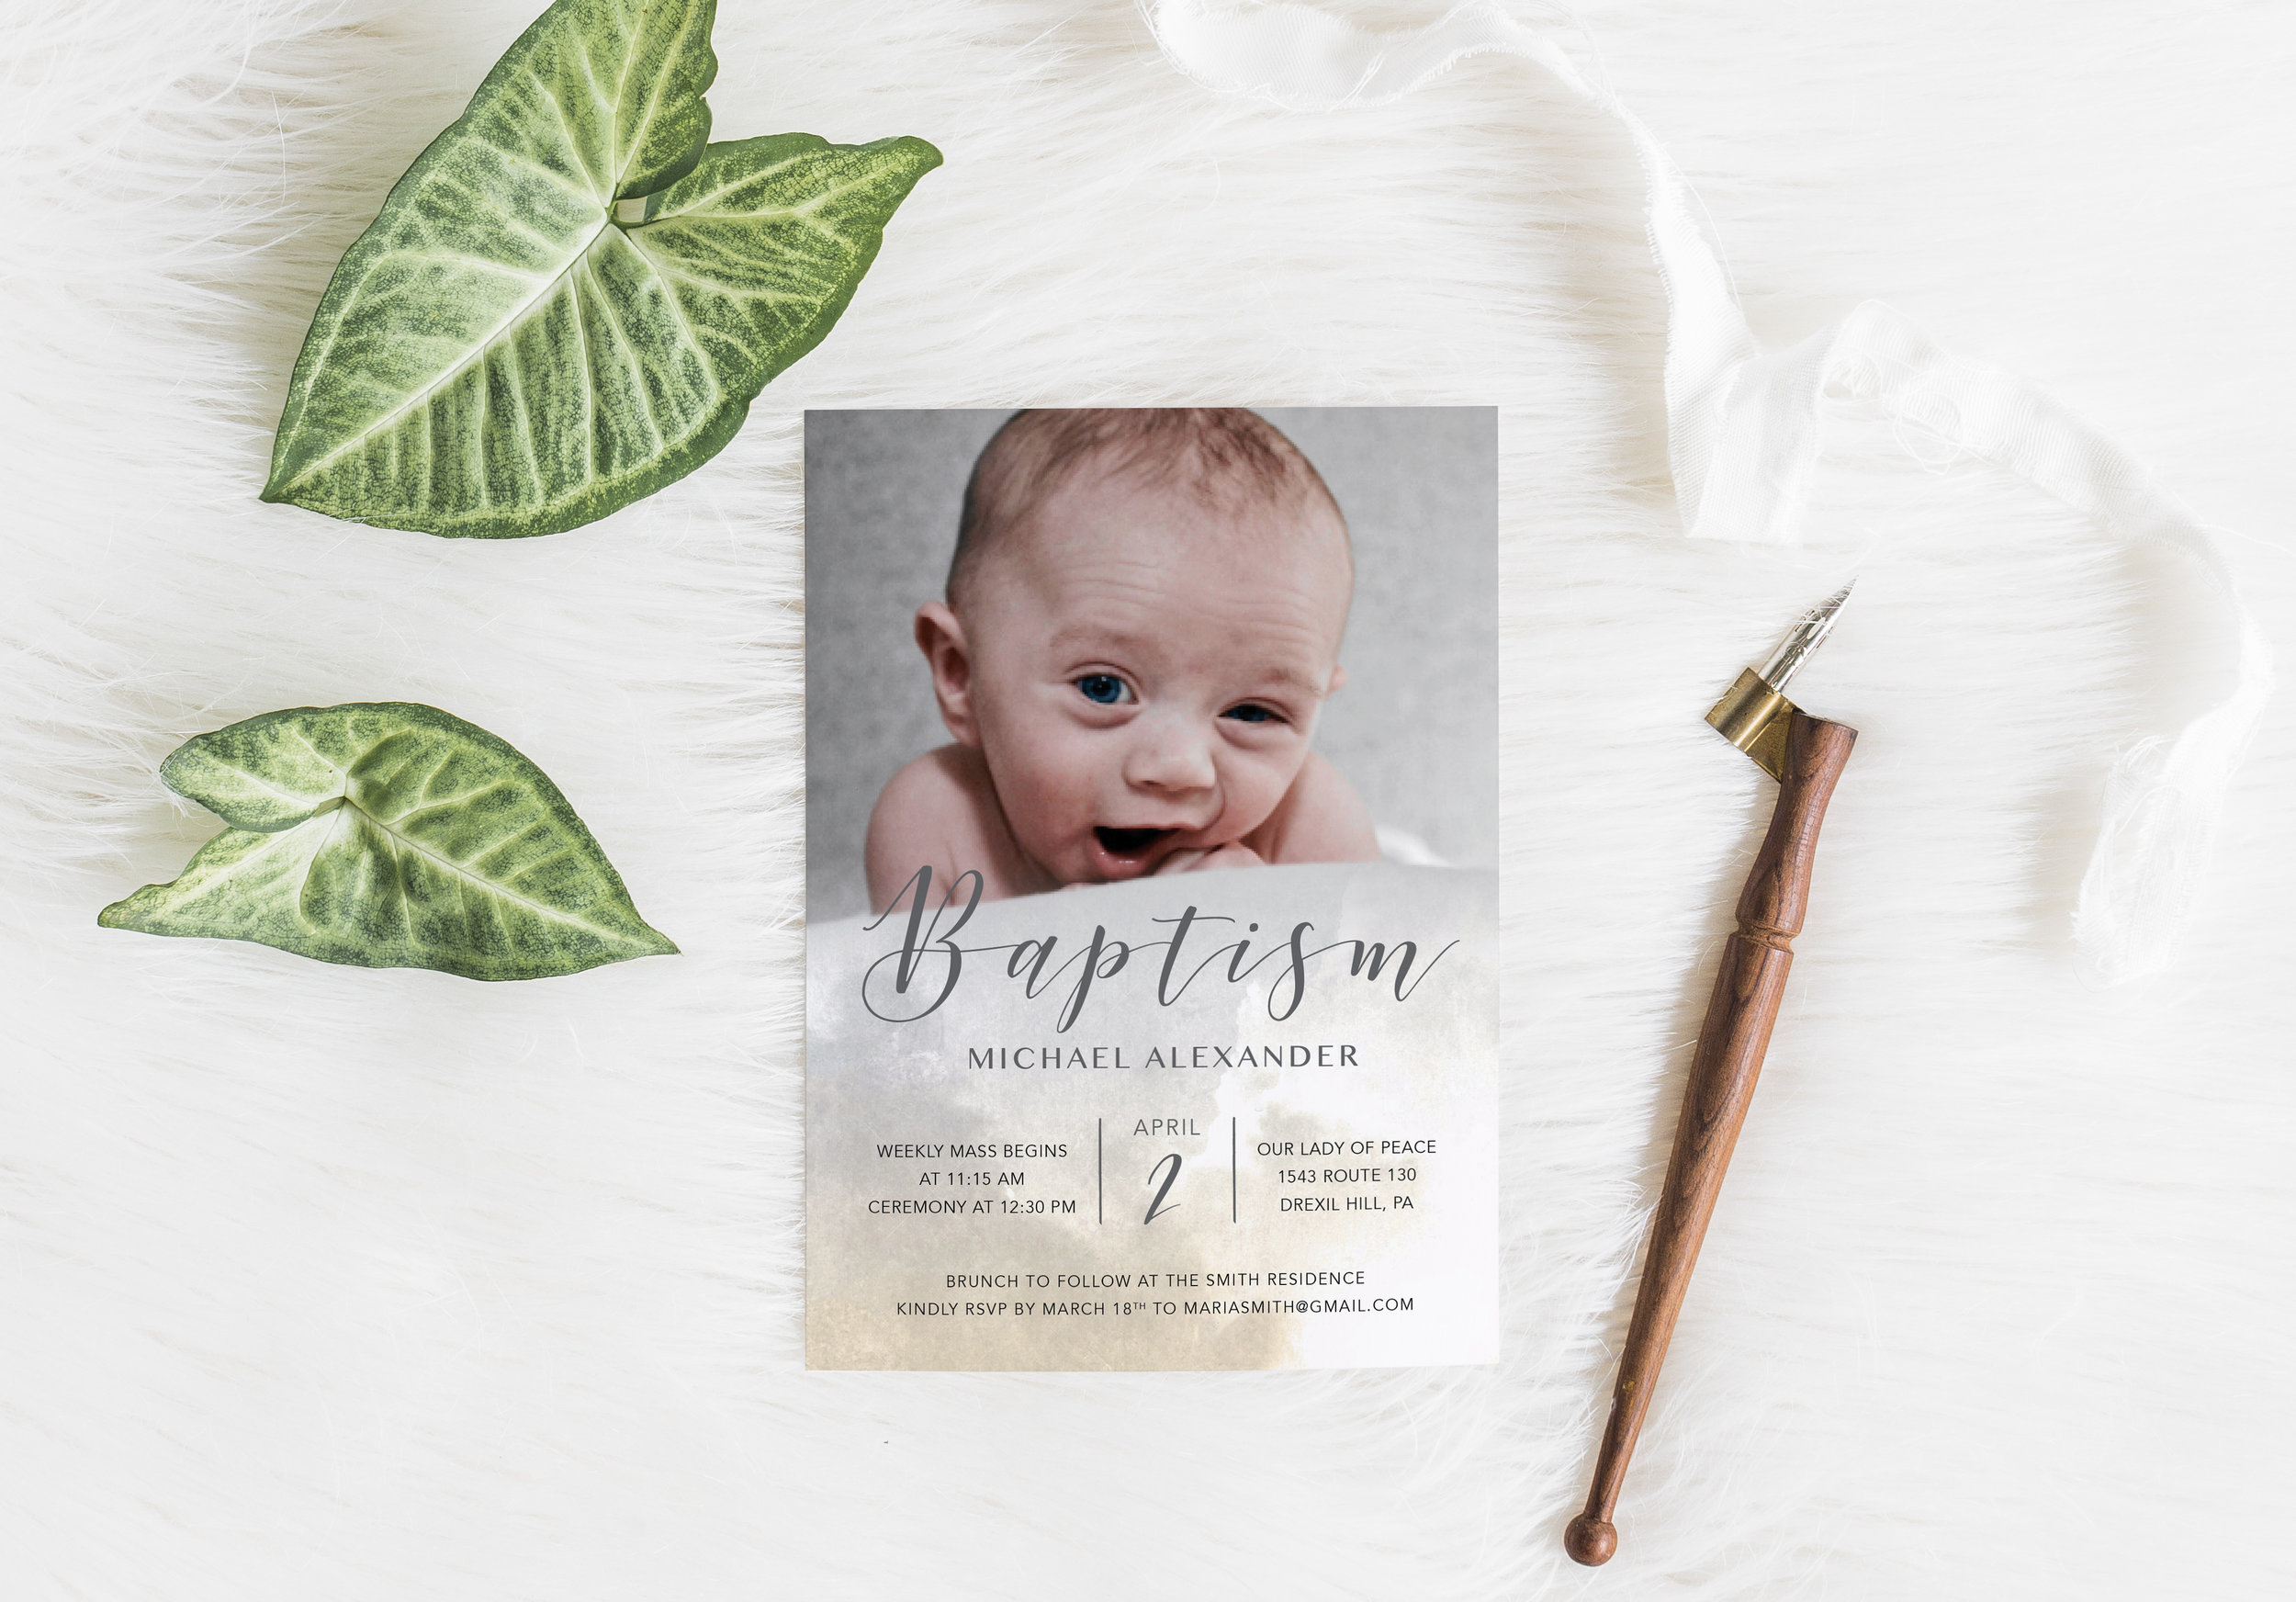 baptism invitation.jpg